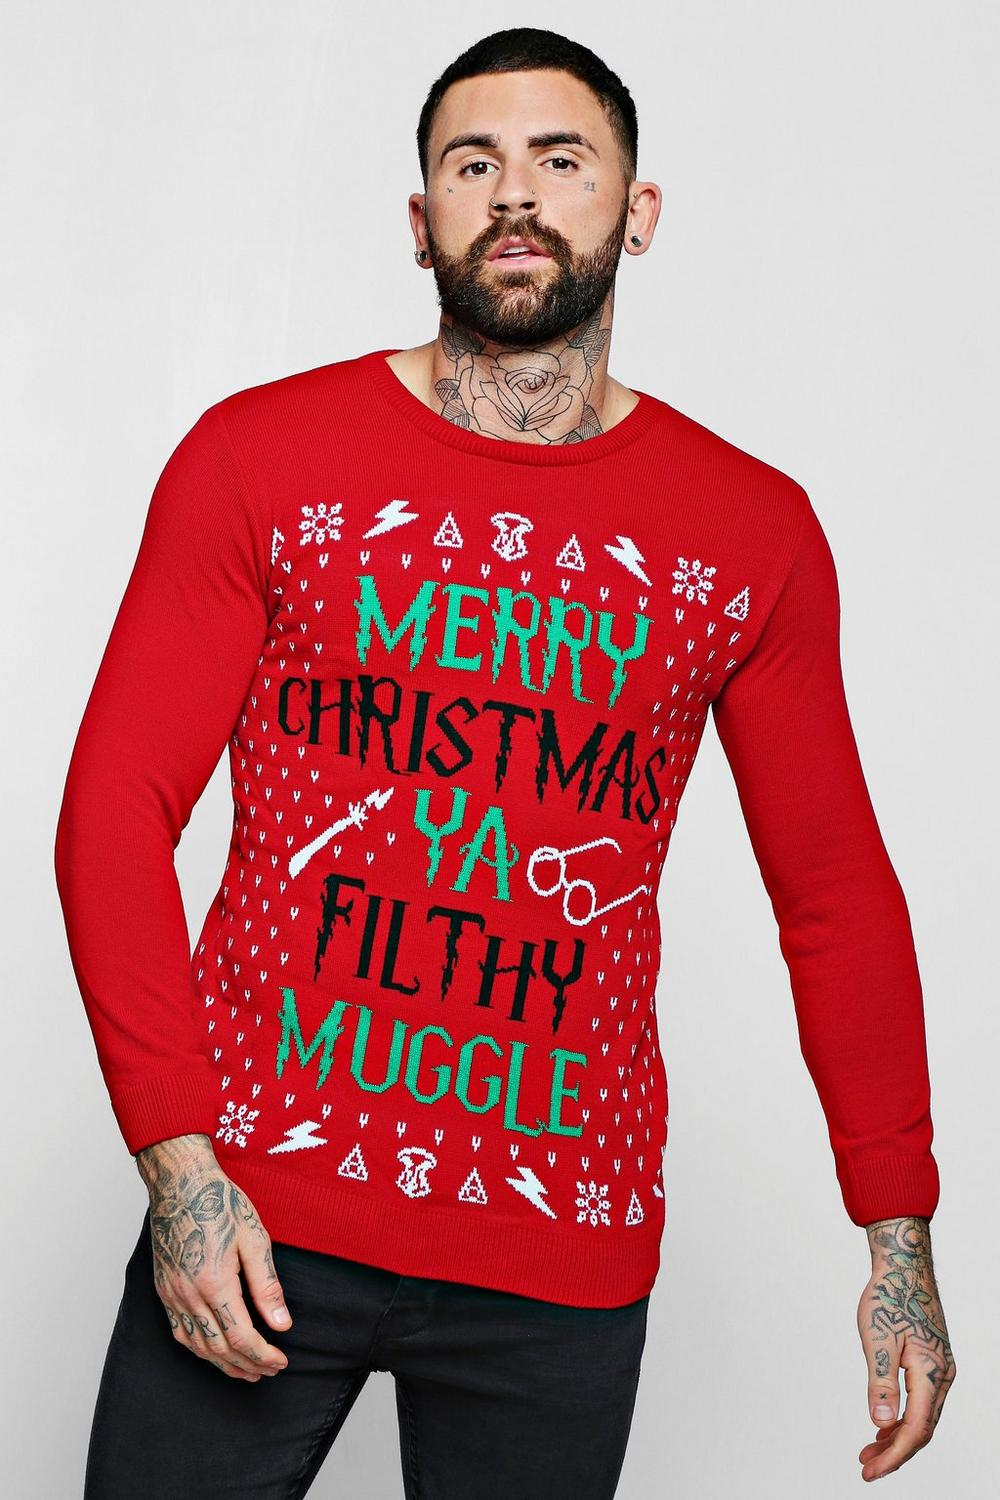 Merry Christmas Ya Filthy Muggle Jumper